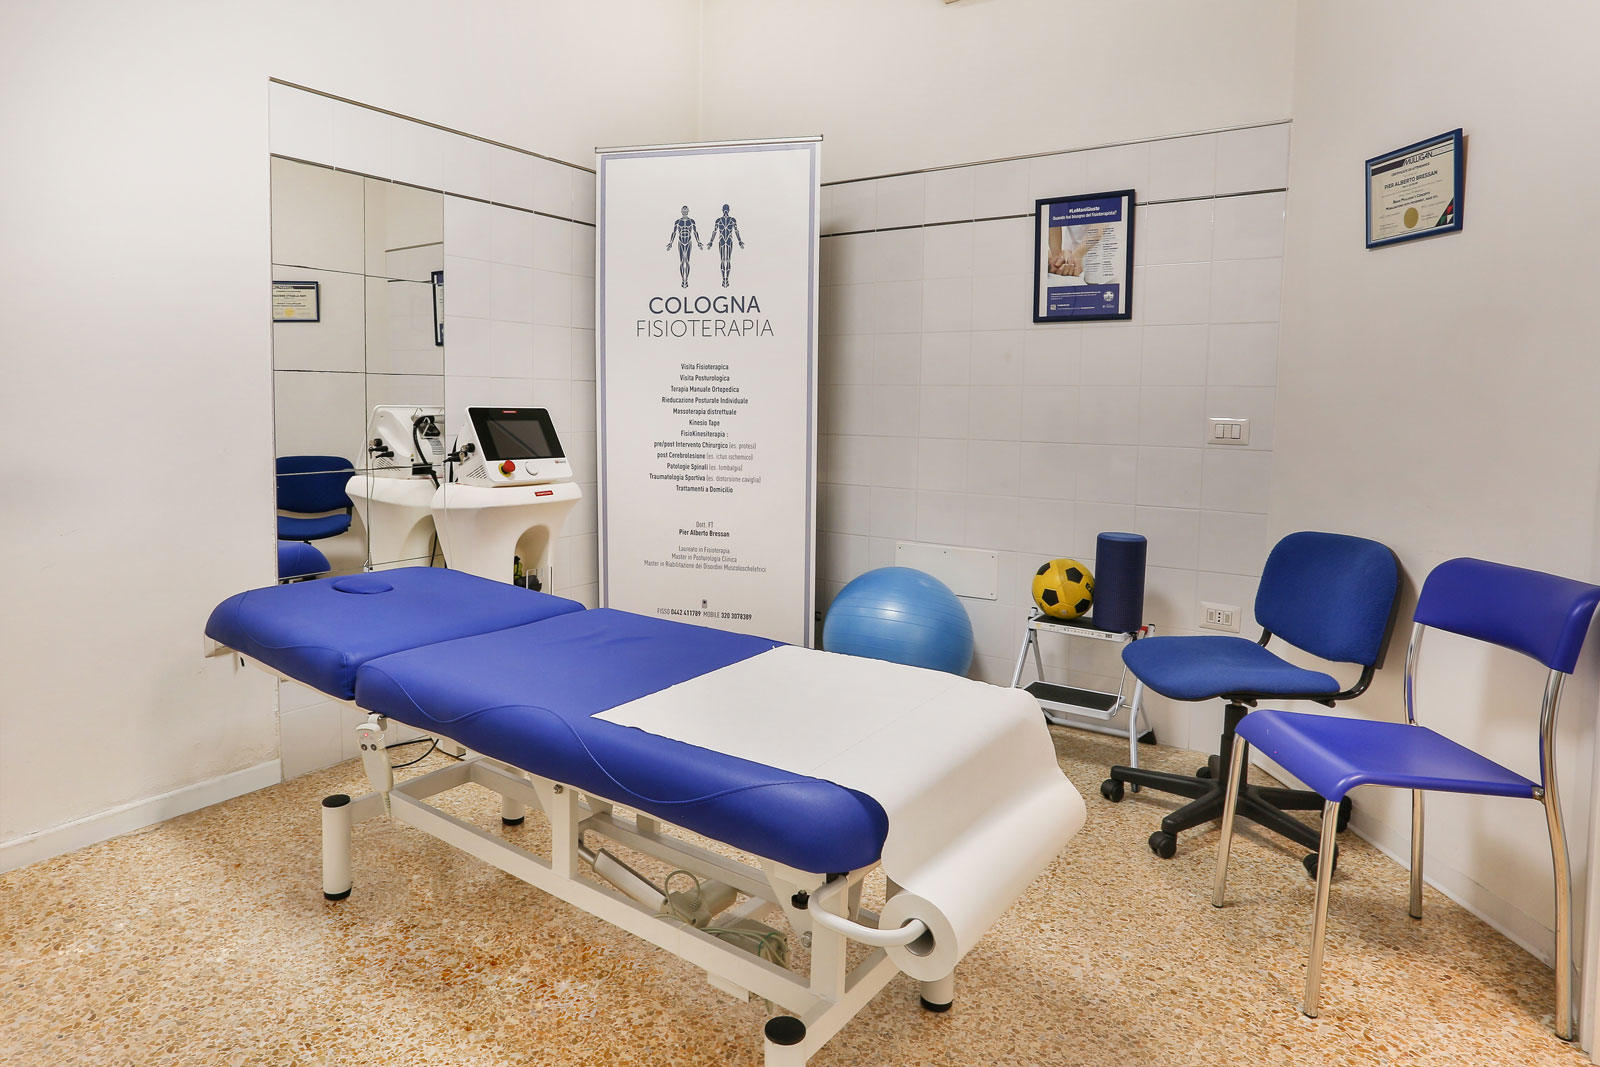 Cologna Fisioterapia Studio 1- Cologna Veneta